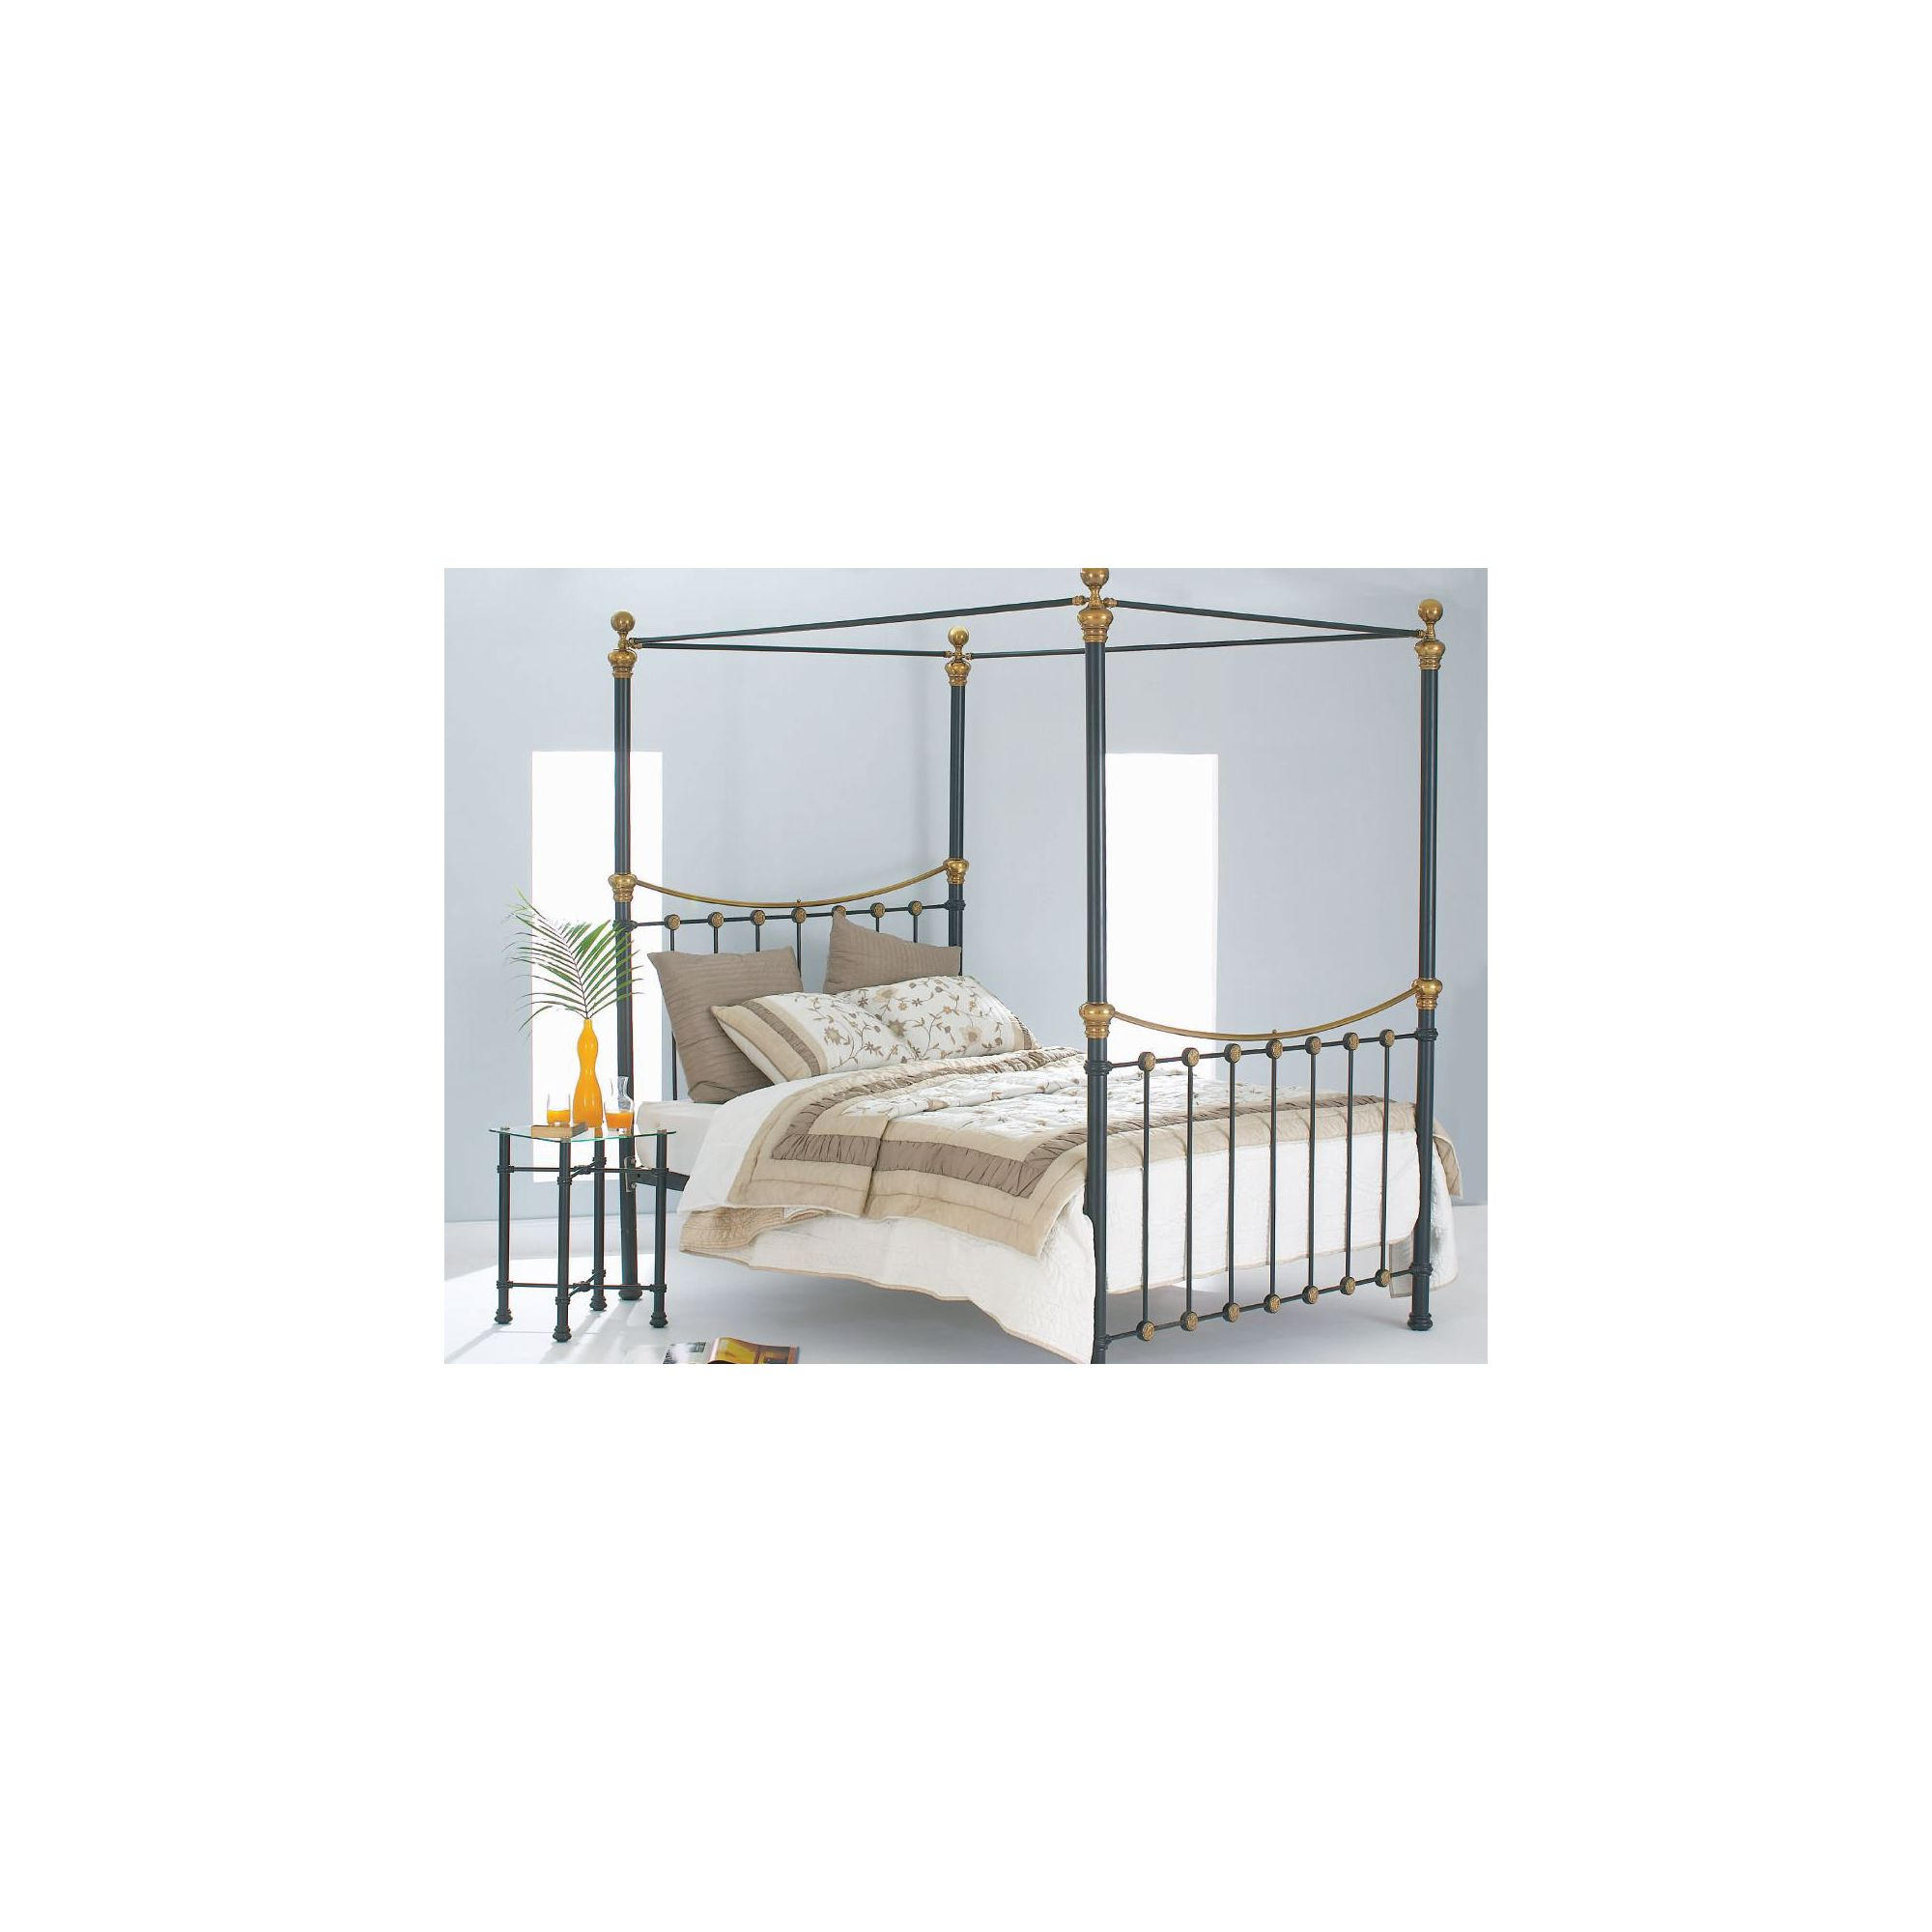 OBC Rannoch Bed Frame - Double at Tescos Direct